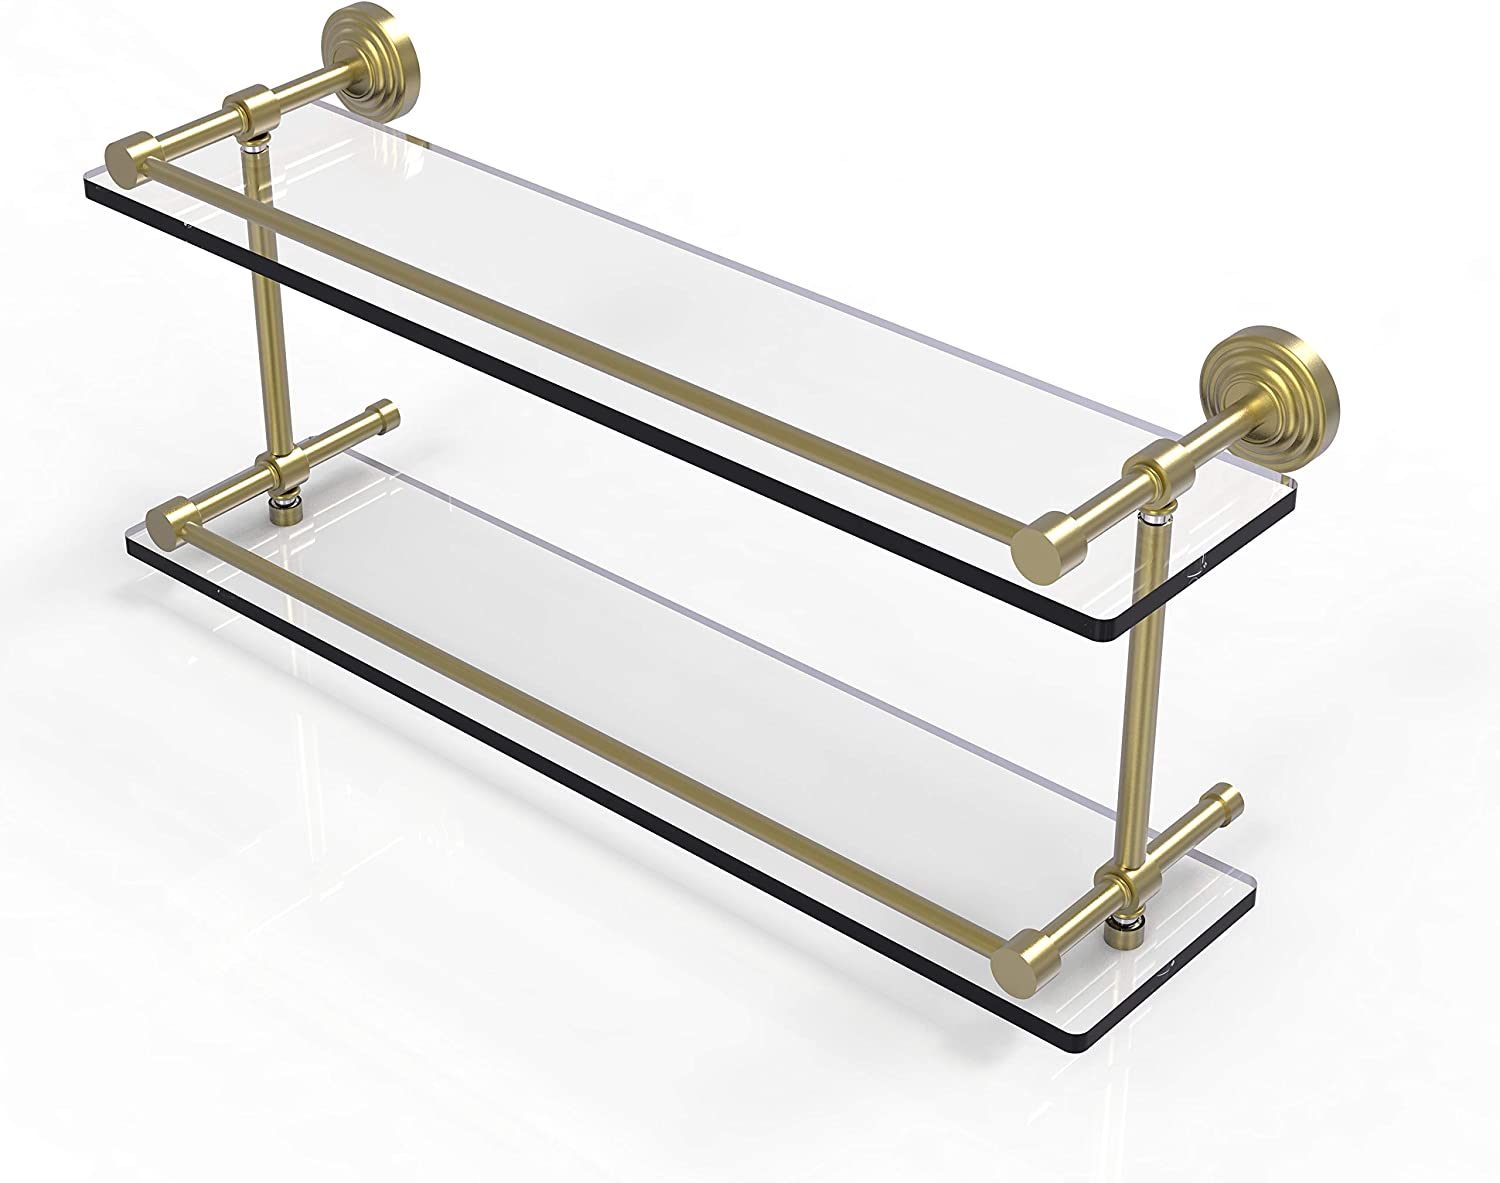 Allied Brass WP-2 22-GAL-SBR Wp 2 Double NEW before selling ☆ Waverly Place National products Inch Gal